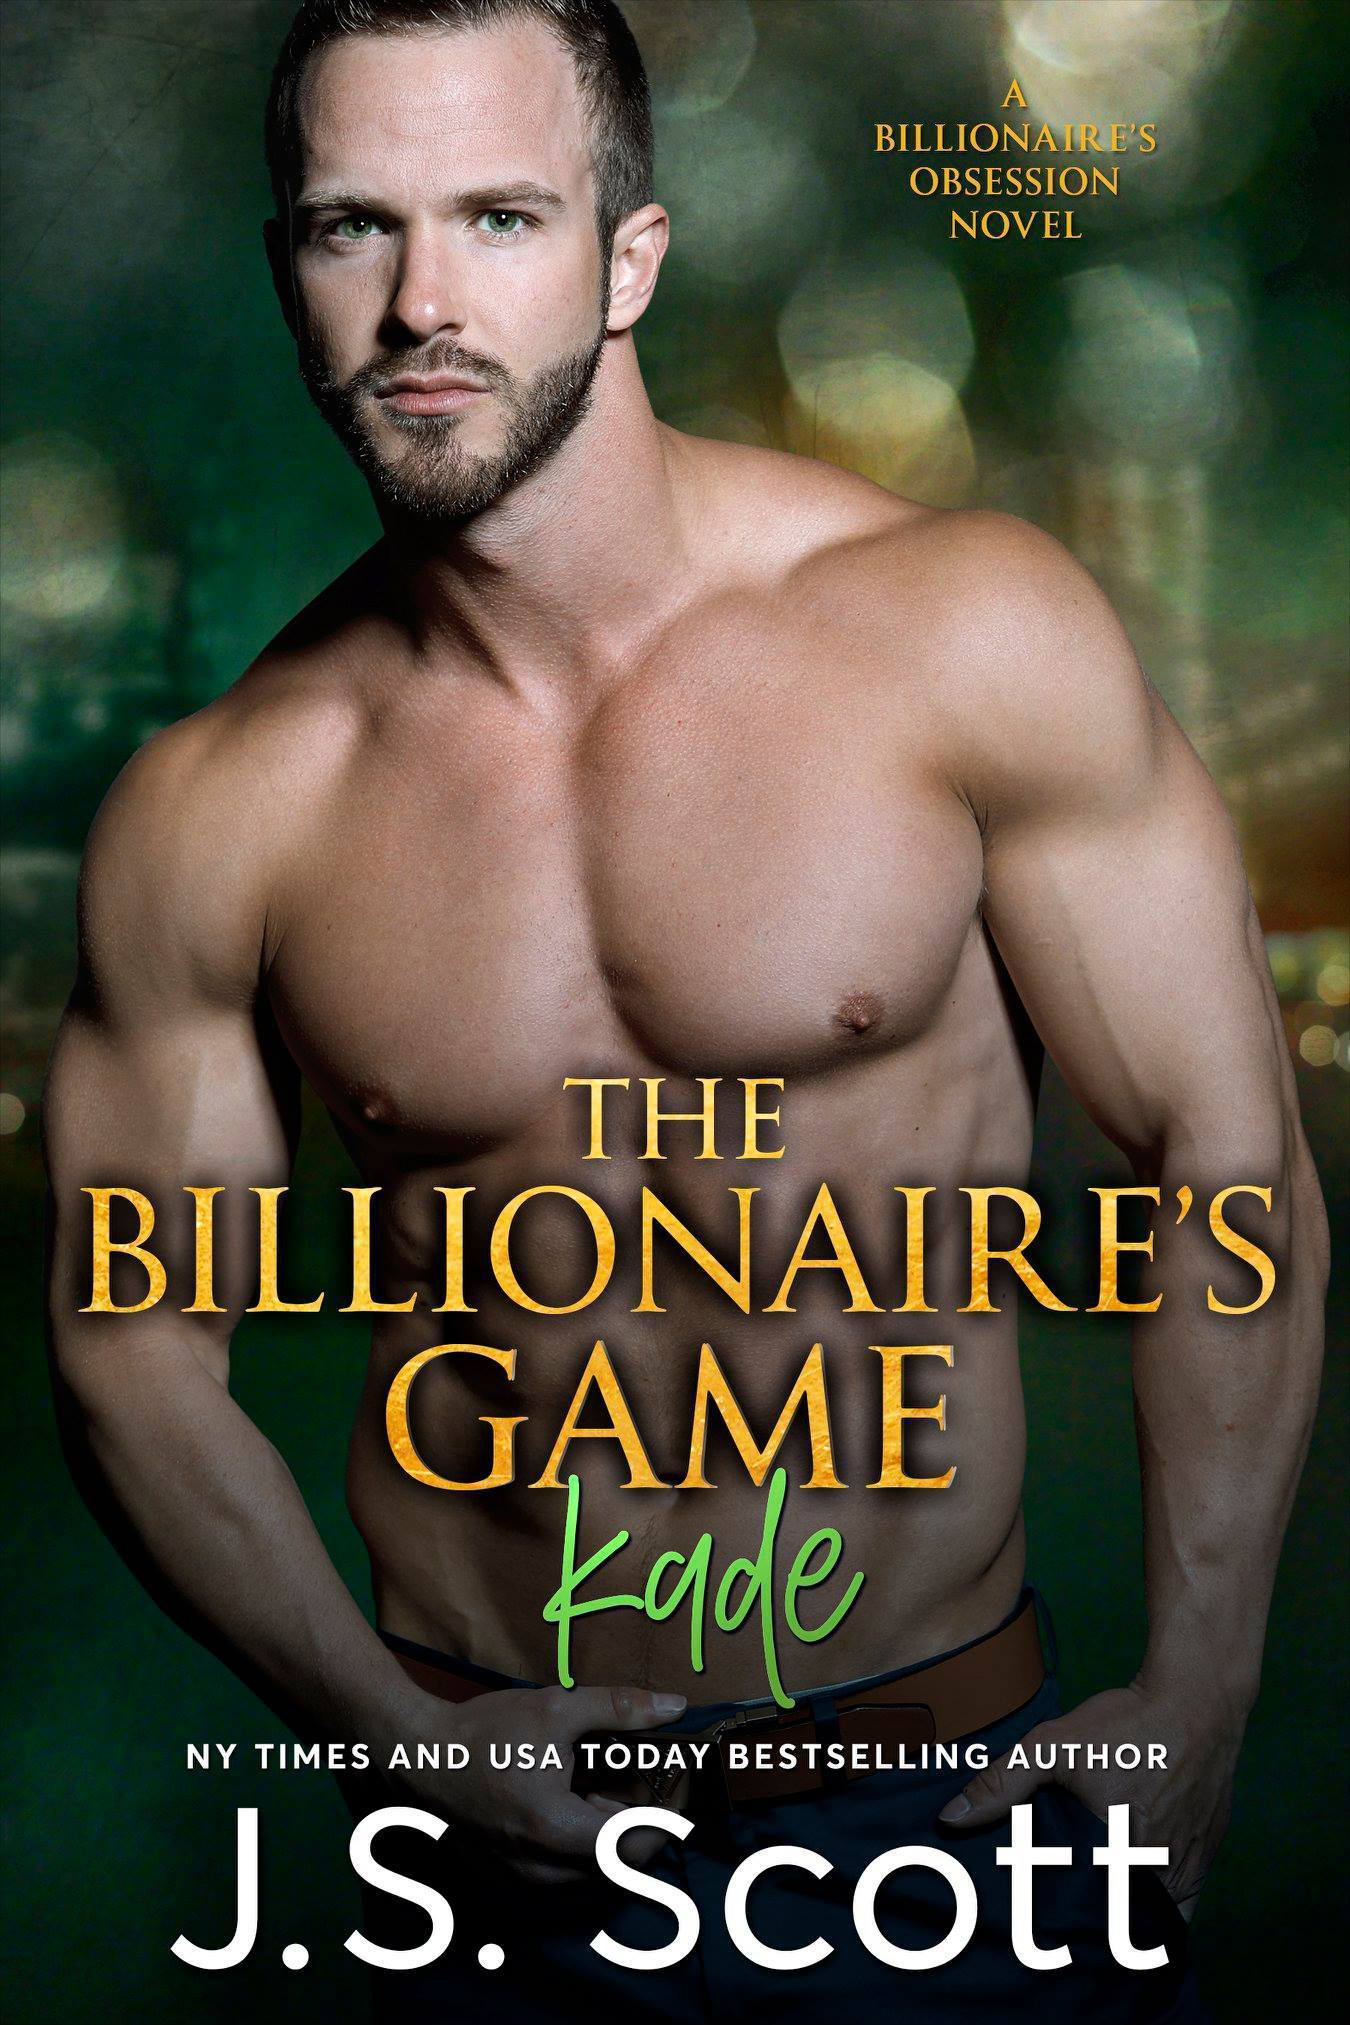 THE BILLIONAIRE'S GAME - KADE